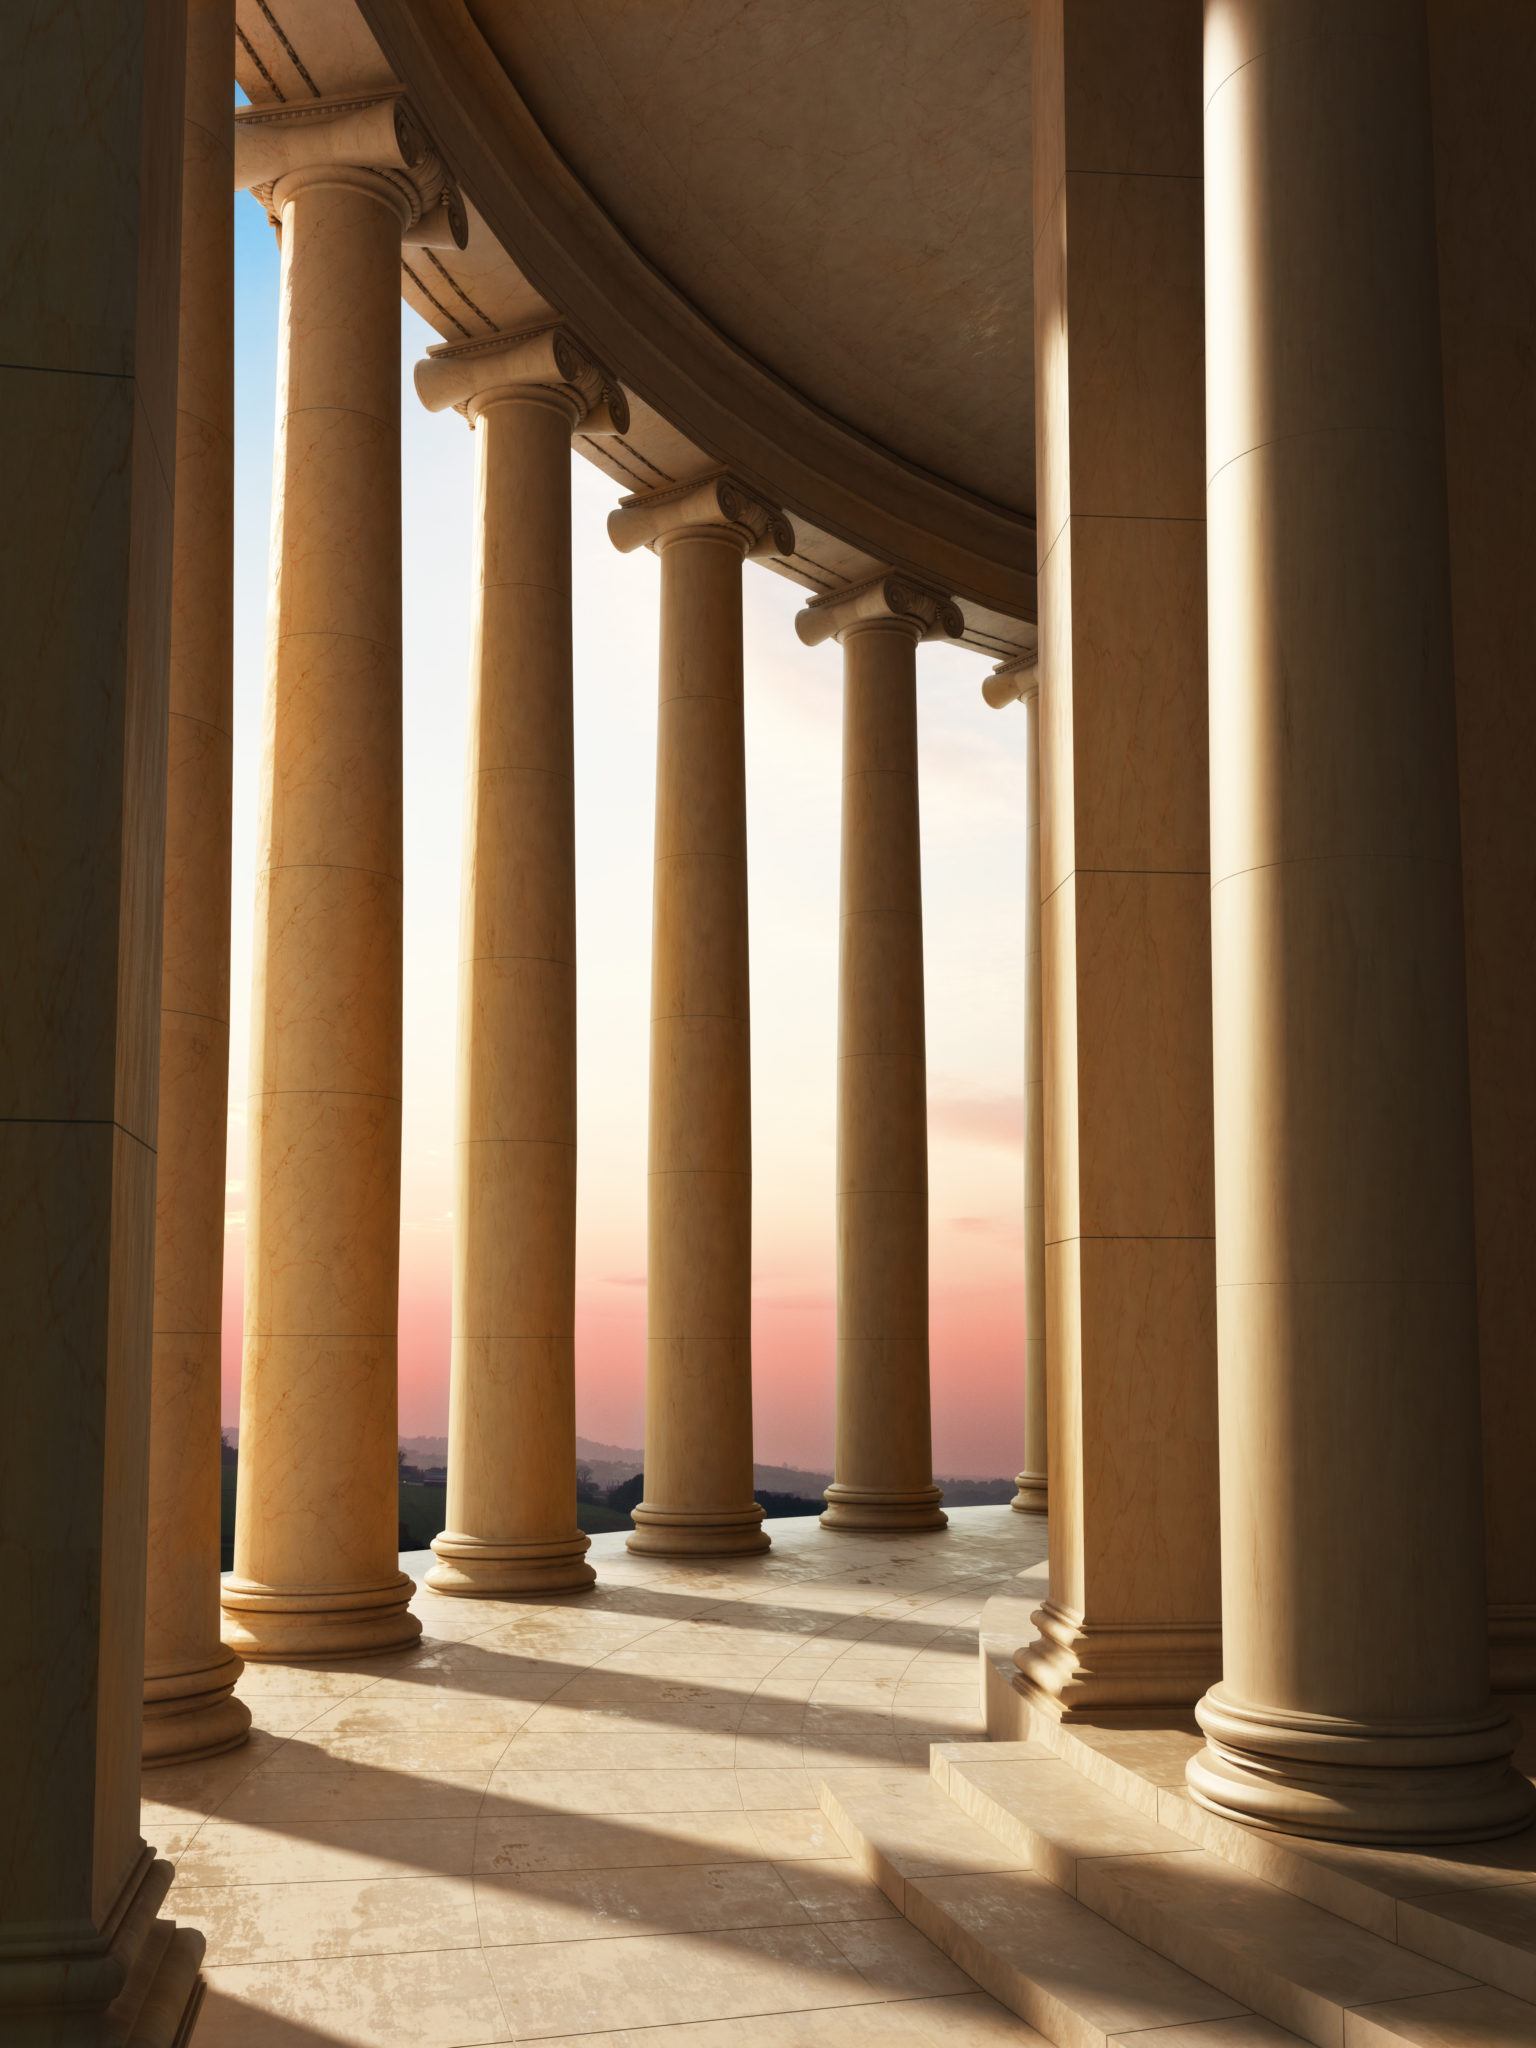 Column architecture with a sunset background